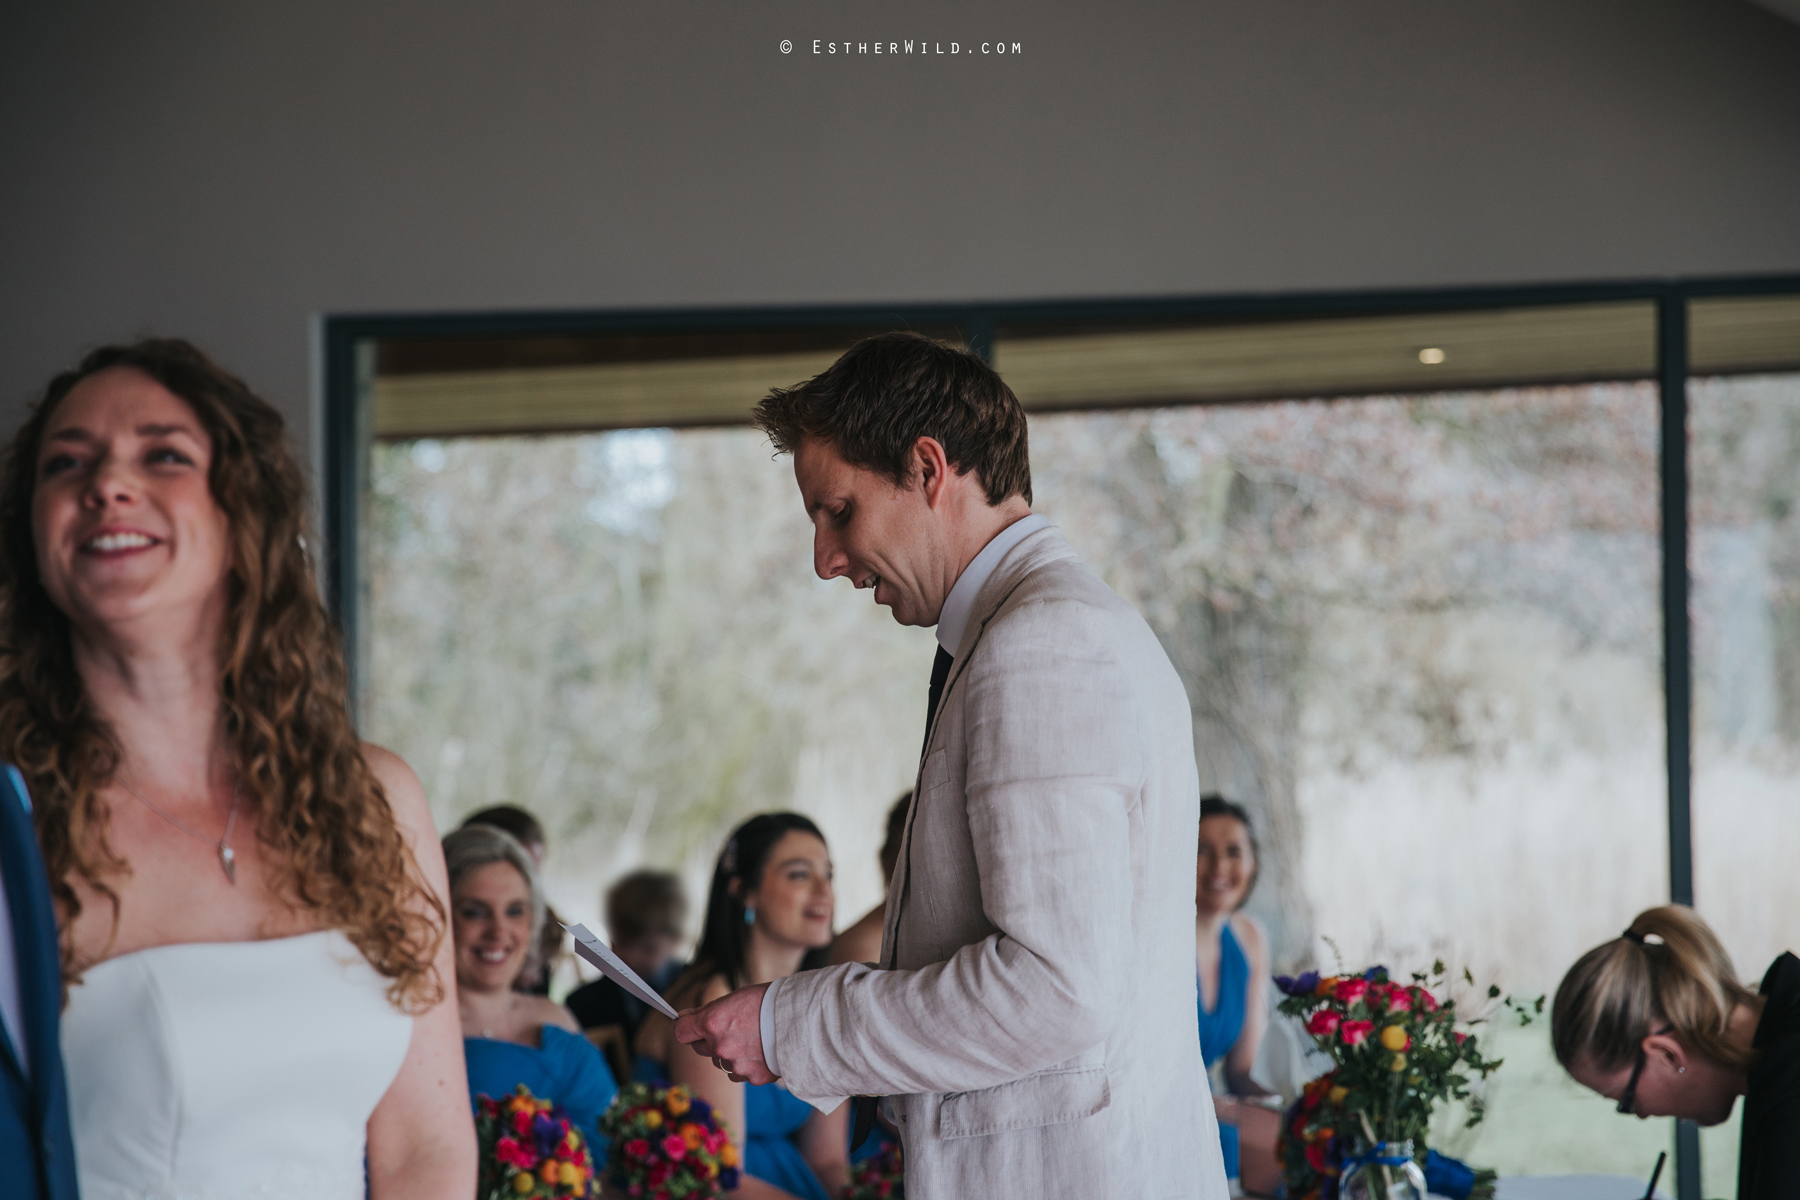 The_BoatHouse_Wedding_Venue_Ormesby_Norfolk_Broads_Boat_Wedding_Photography_Esther_Wild_Photographer_IMG_1148.jpg